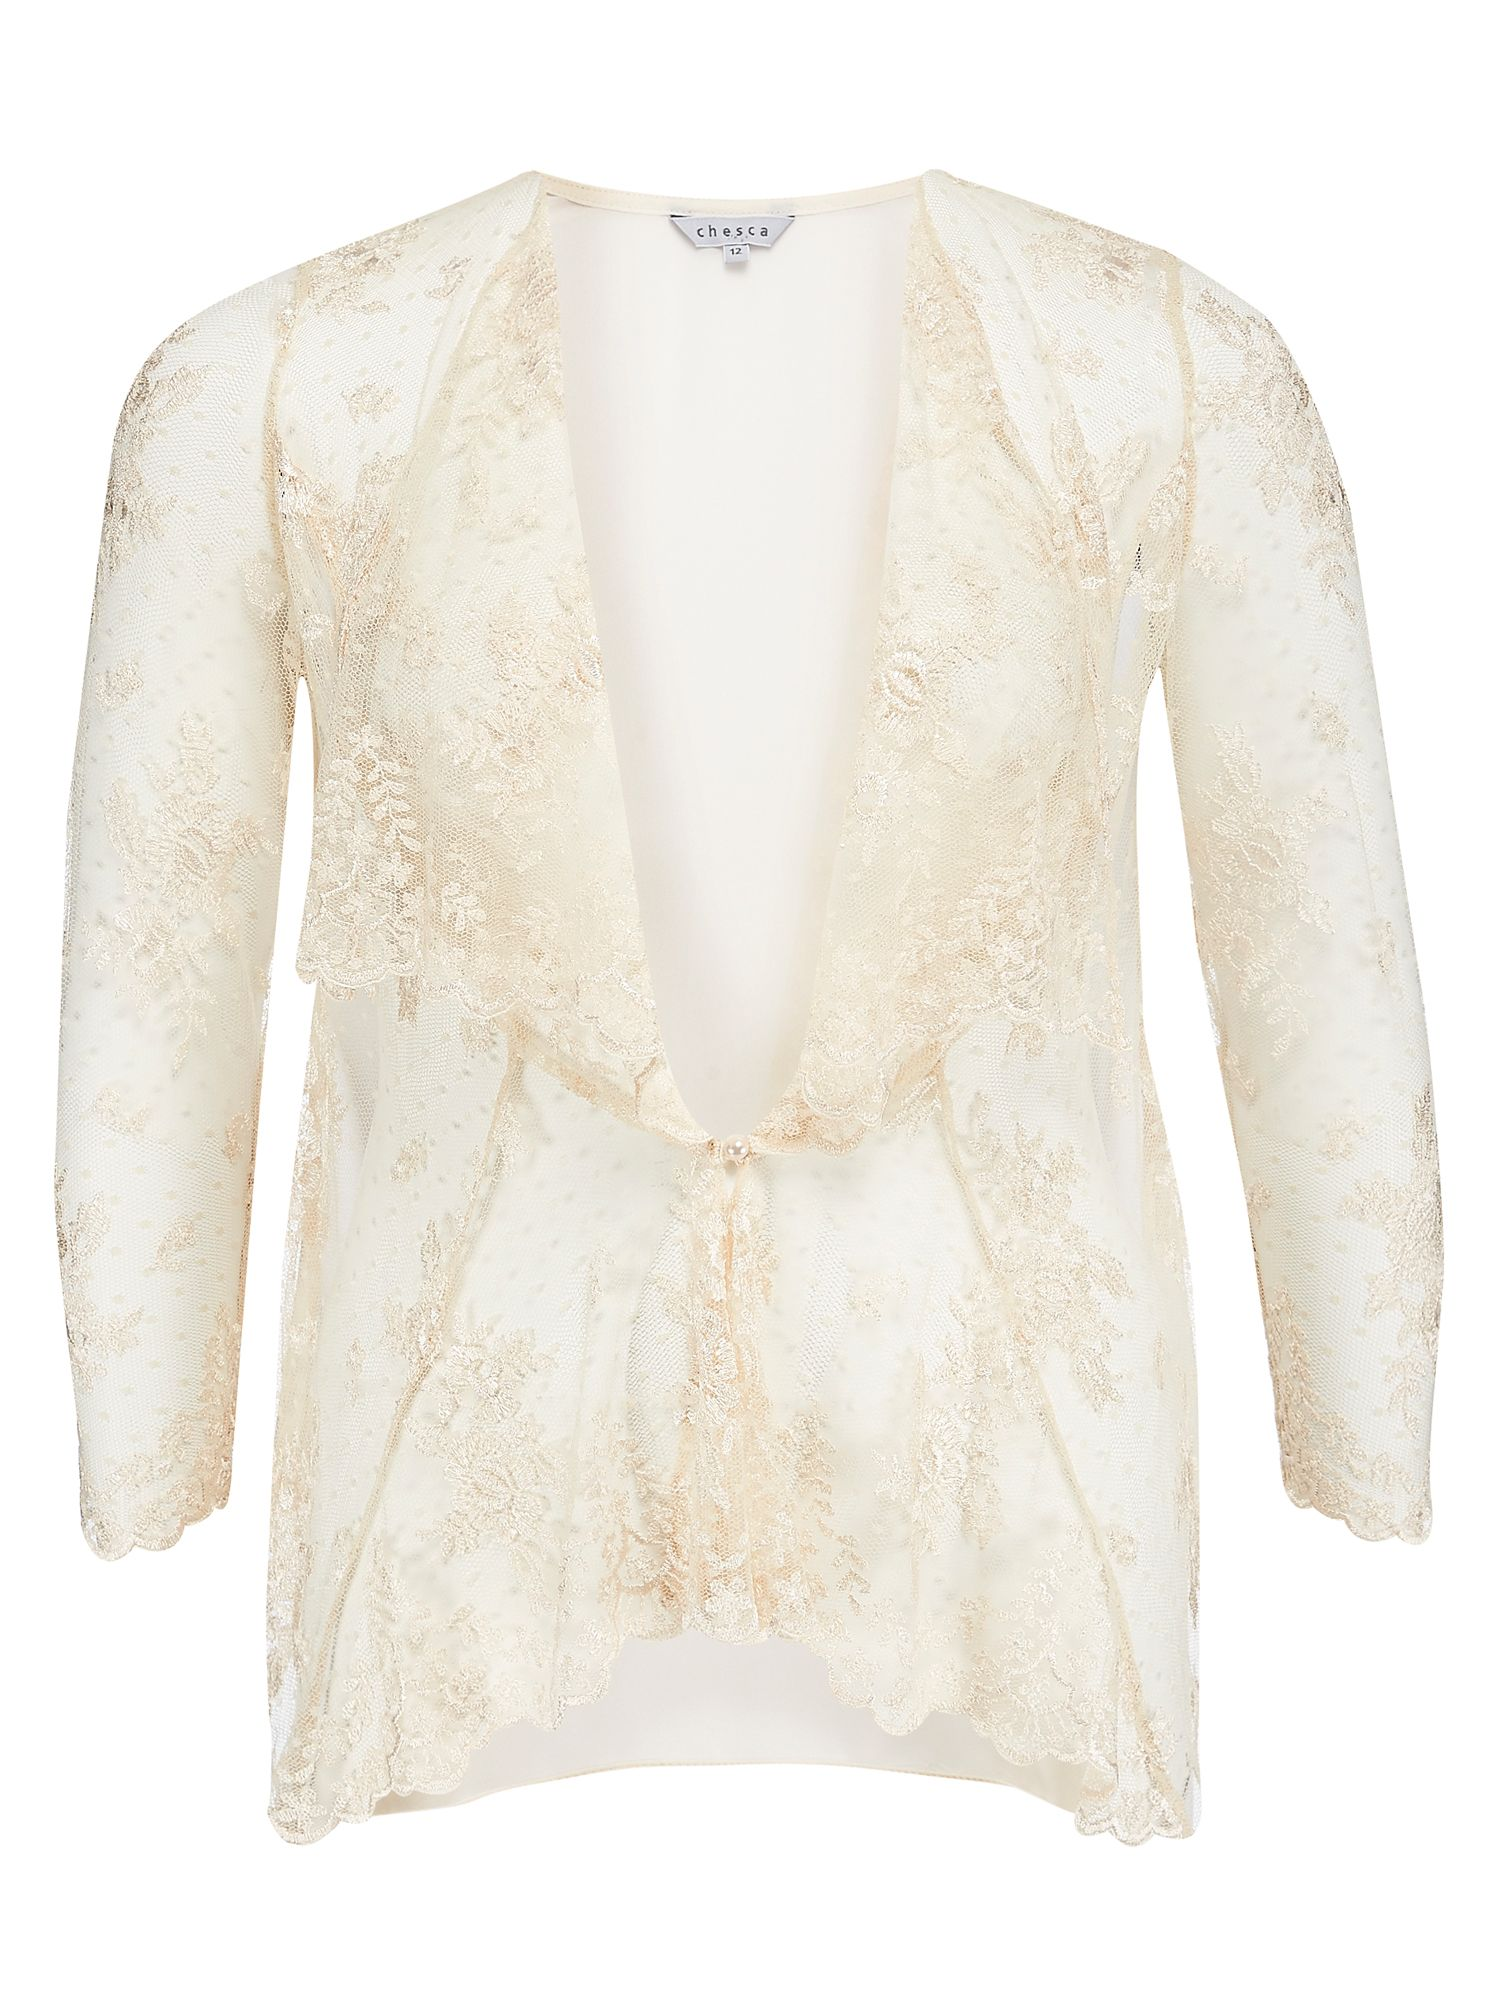 Edwardian Style Shawls Chesca Scallopped Lace Coverup £105.00 AT vintagedancer.com